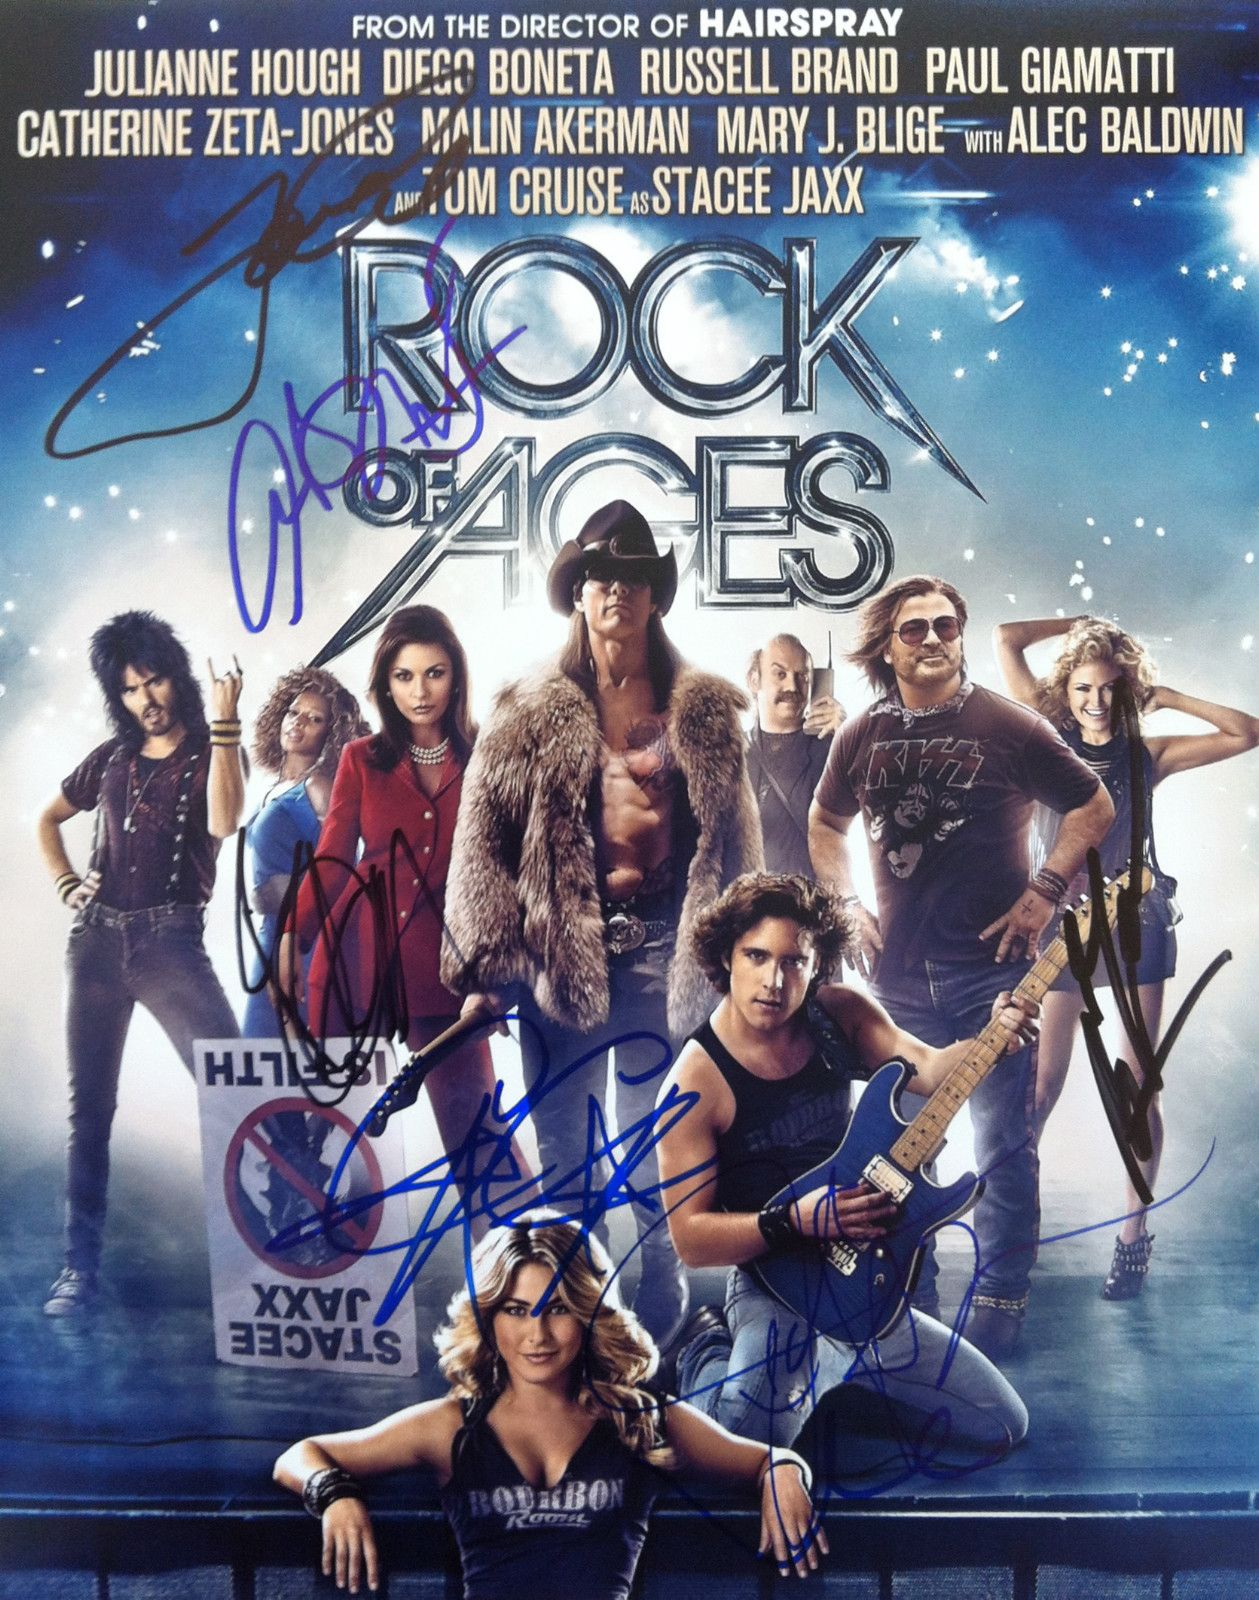 Rock of Ages Cast 7 Signed 11x14 Photo Tom Cruise C C